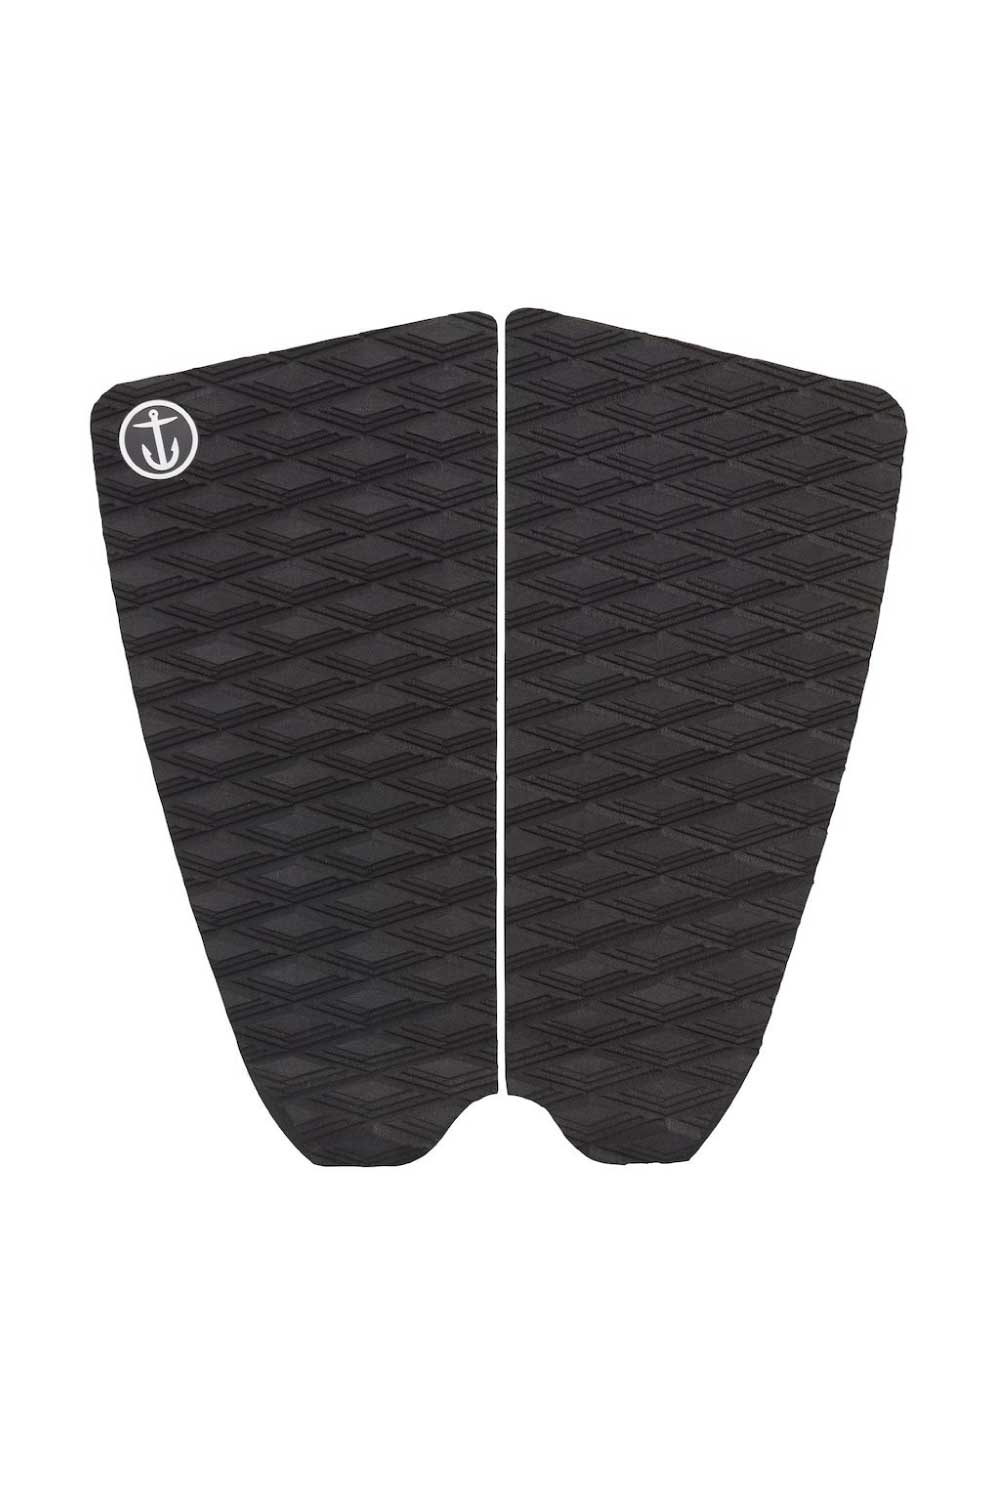 Captain Fin Co Infrantry Traction Pad